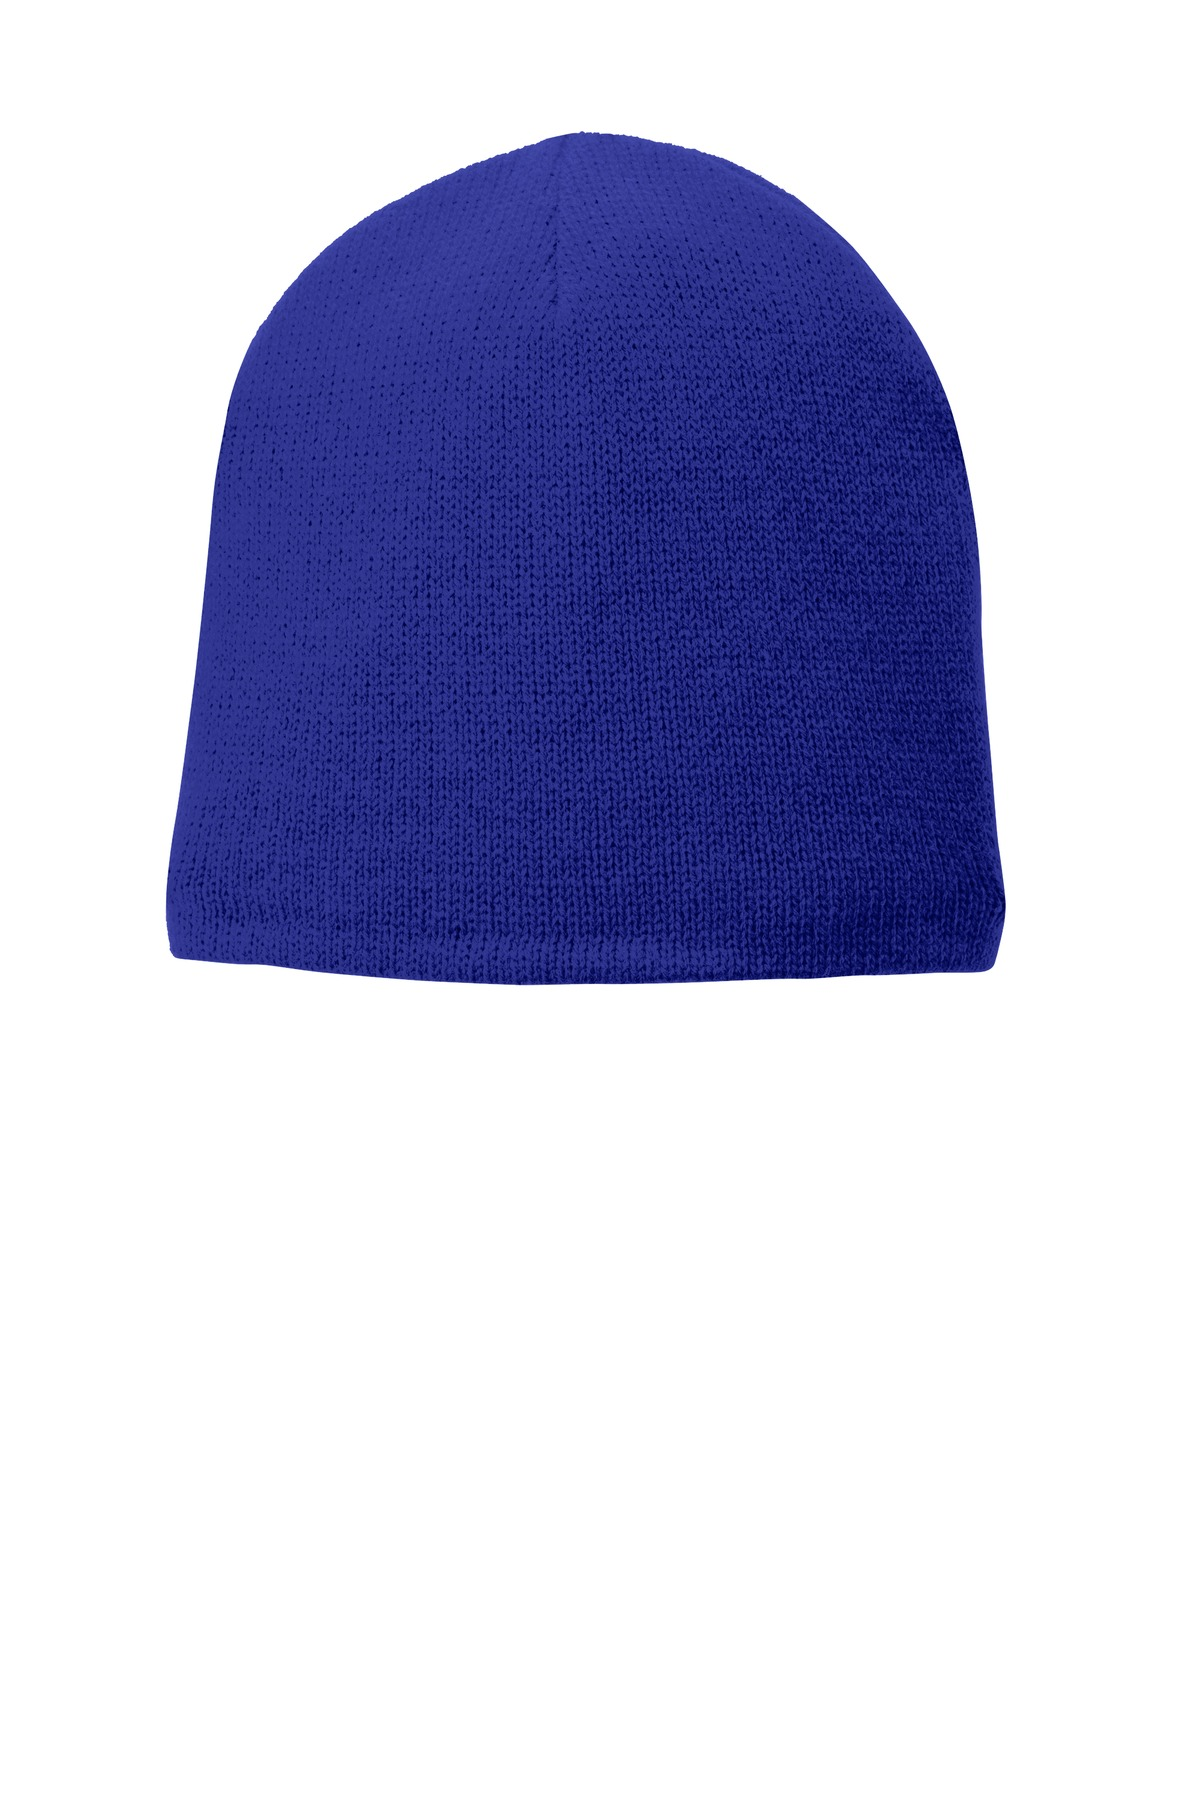 Port & Company ®  Fleece-Lined Beanie Cap. CP91L - Athletic Royal